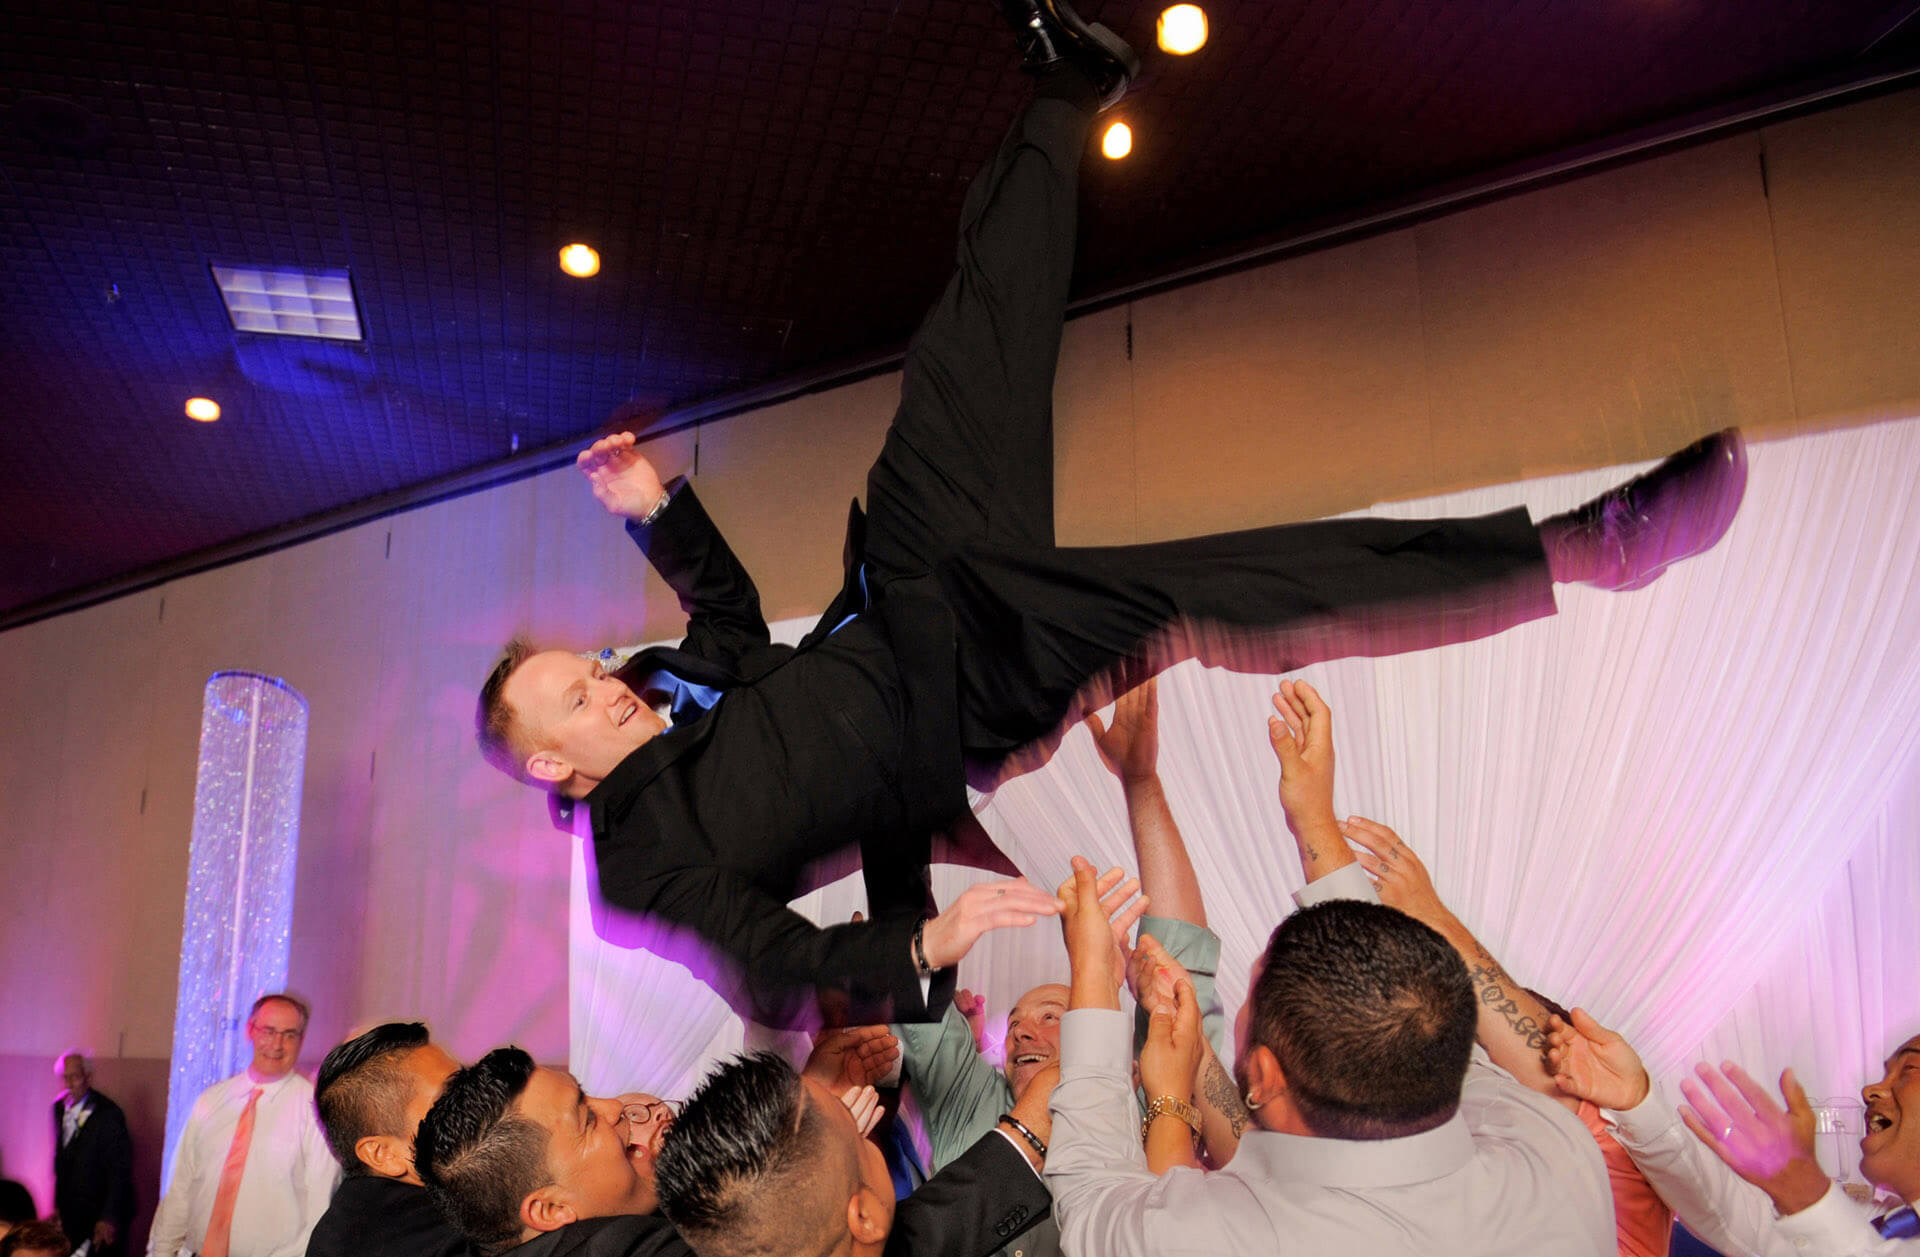 A Sterling Heights, Michigan groom goes flying during the wedding reception during this candid wedding photography moment in the metro Detroit area of Michigan.